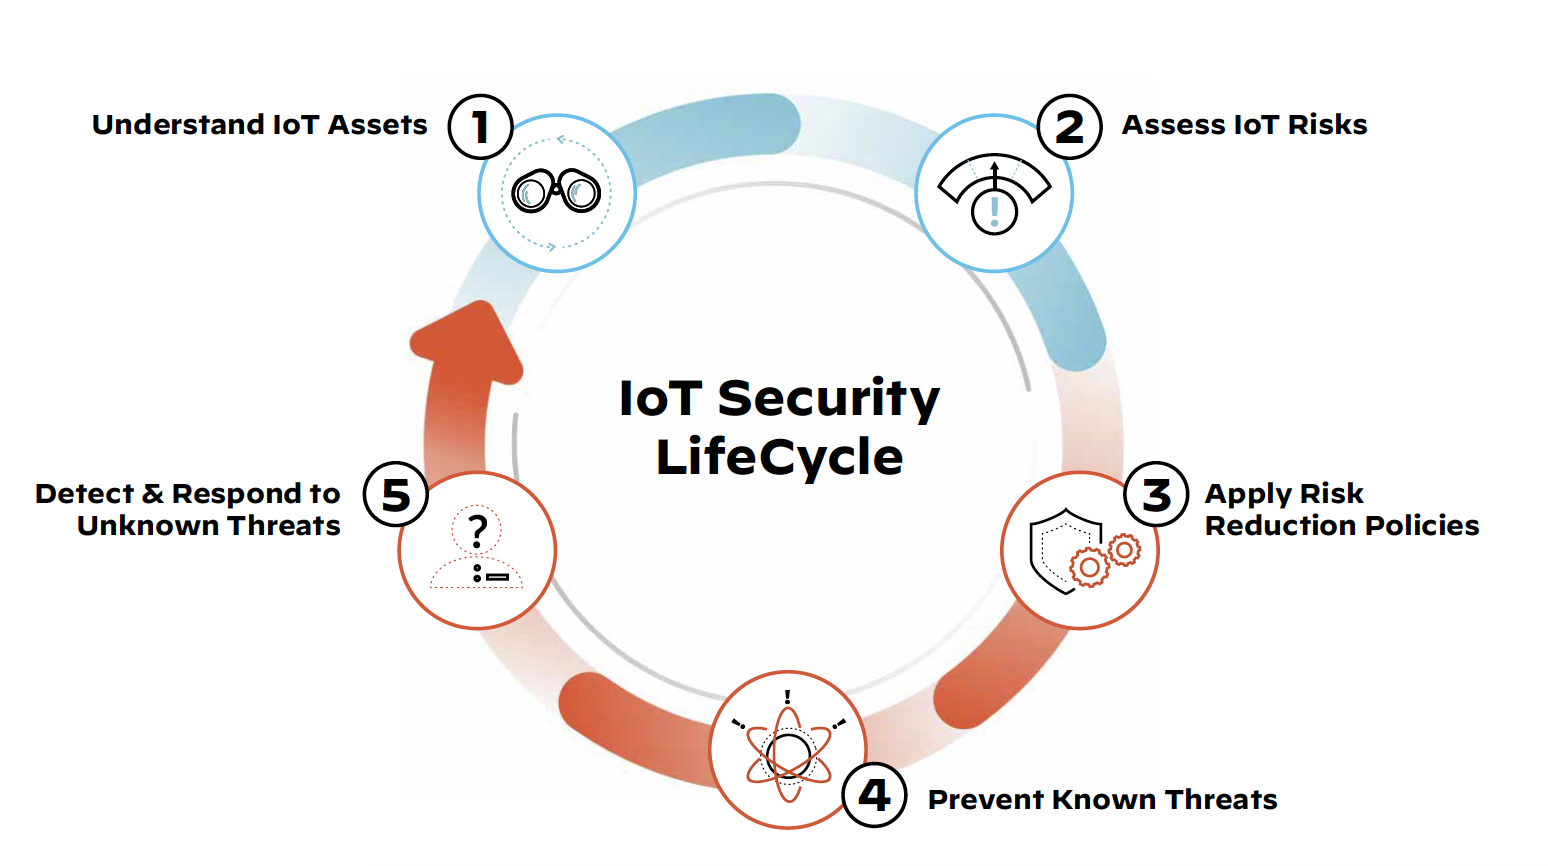 Secure Across the 5 Stages of the IoT Security Lifecycle